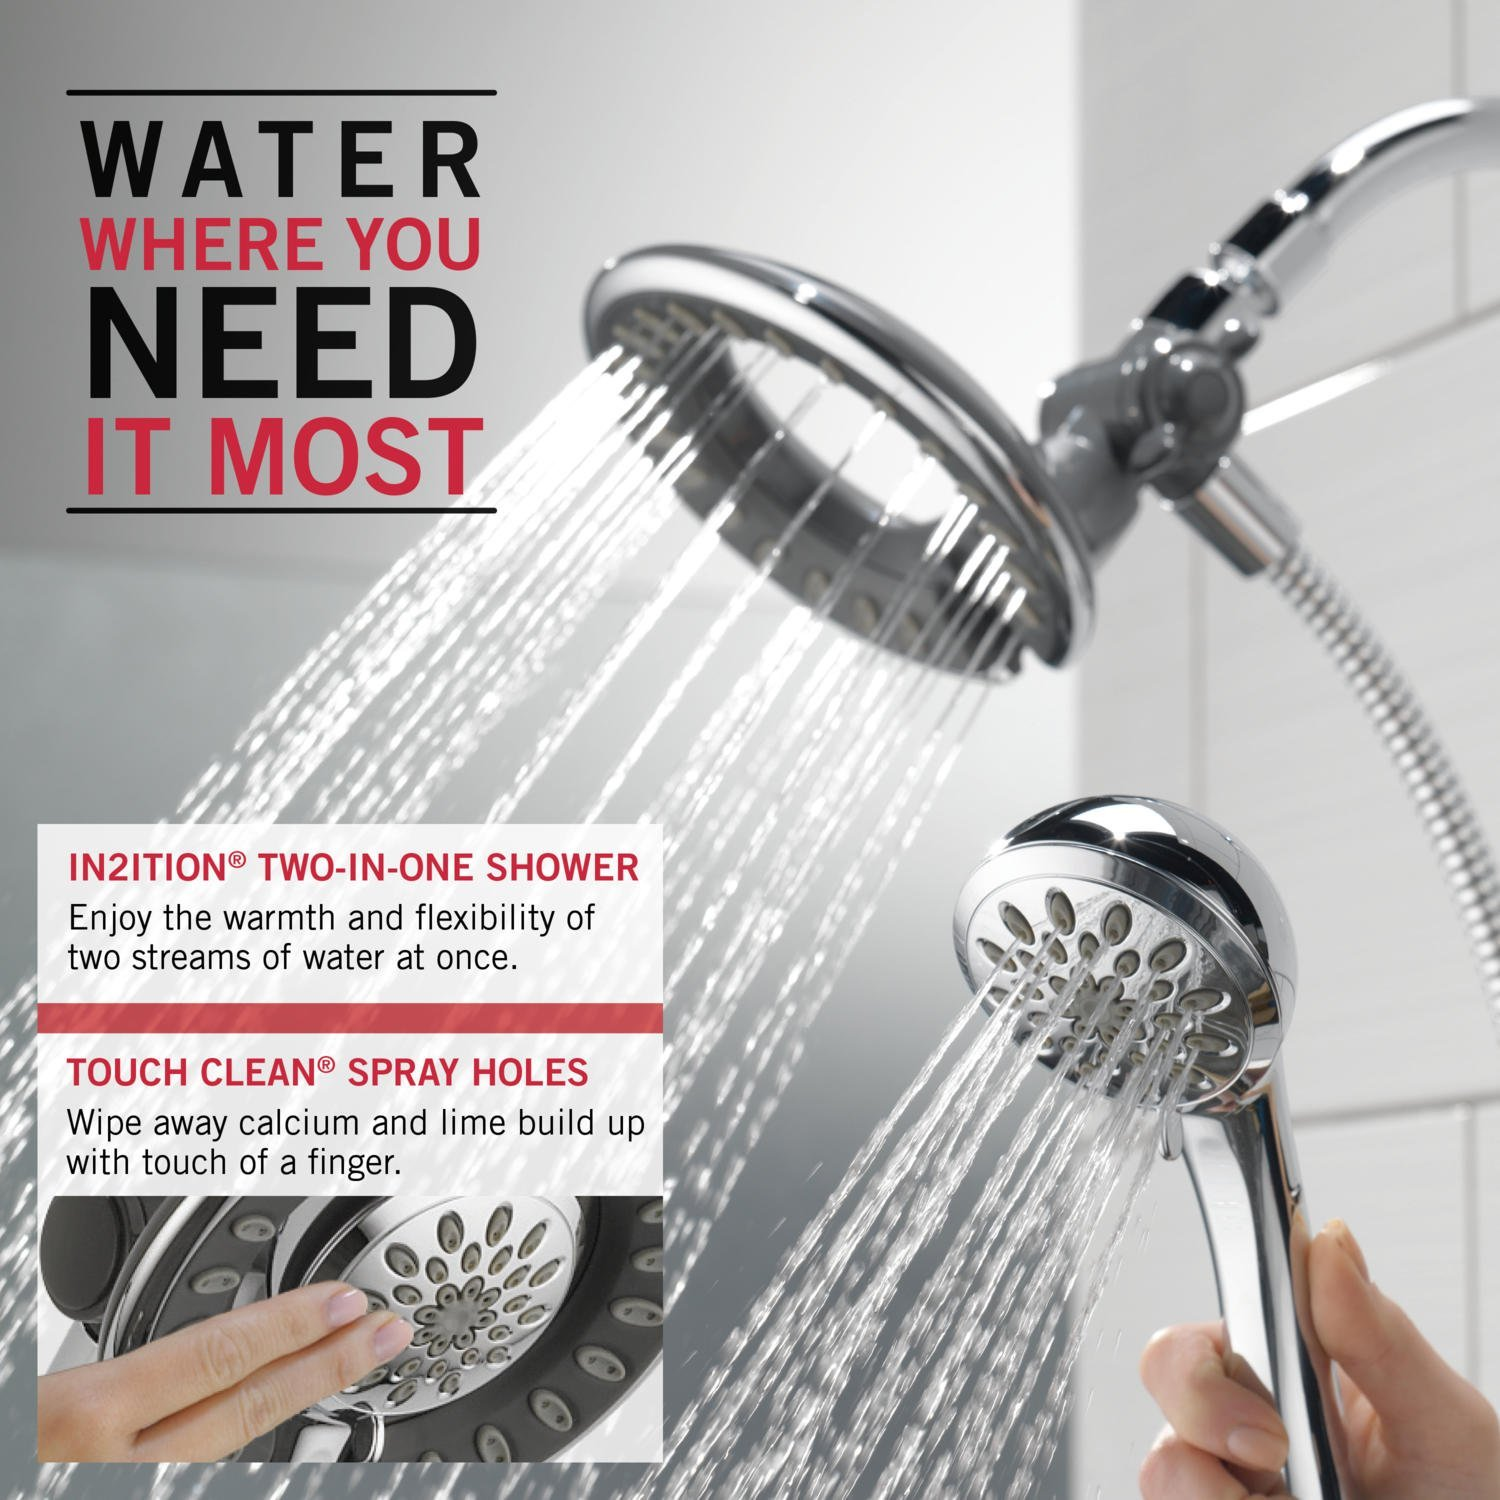 Delta 58065 In2ition Two In One Shower, Chrome   Bathtub And Showerhead  Faucet Systems   Amazon.com